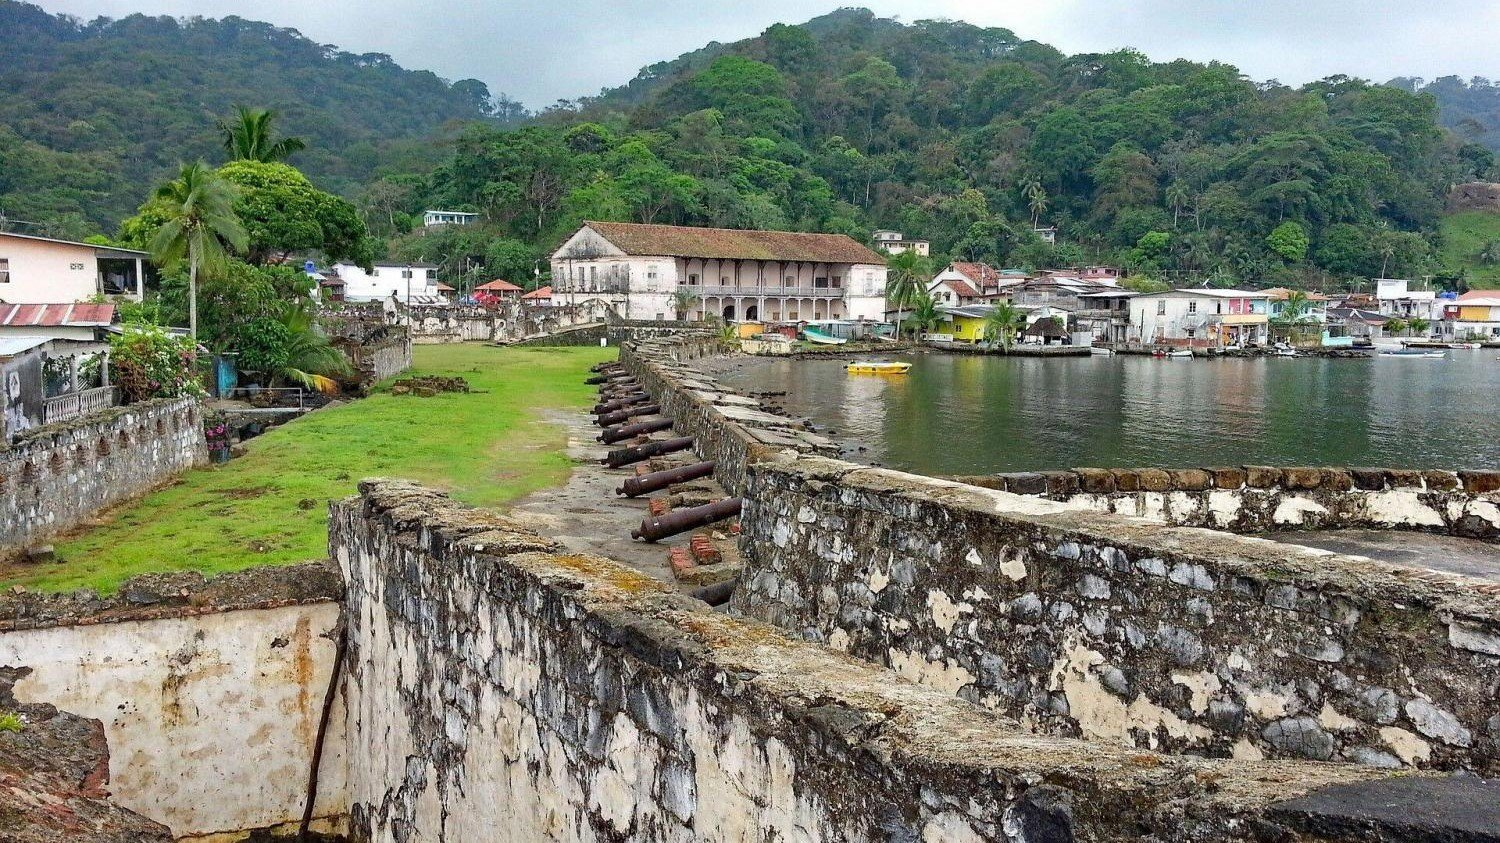 Portobelo town and forts